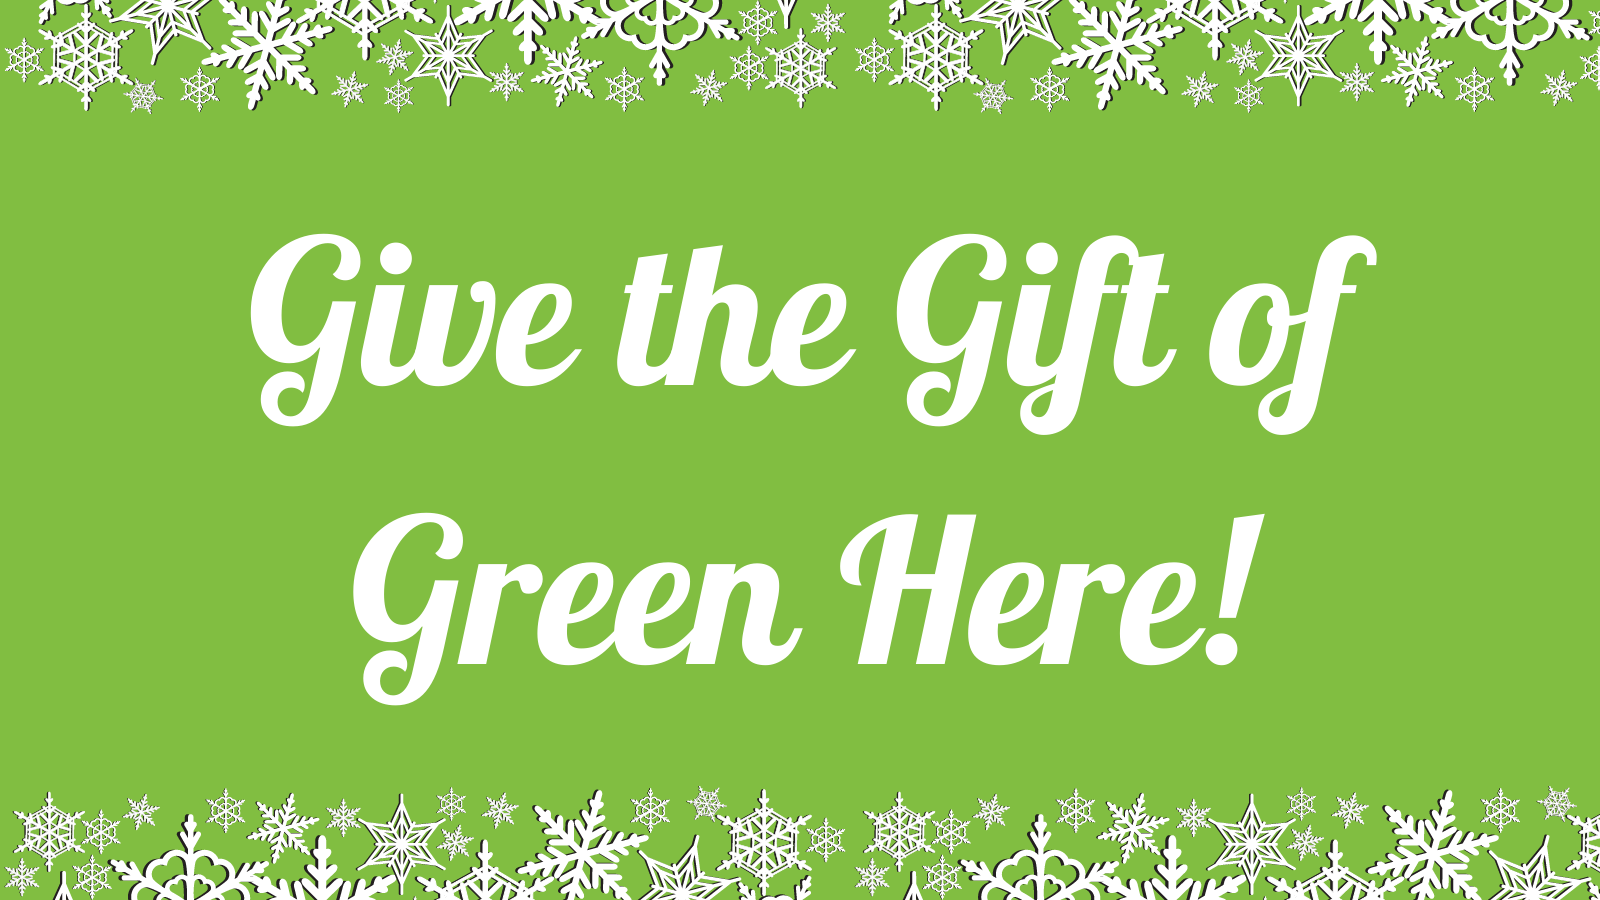 Button directs to the Gift of Green donations page